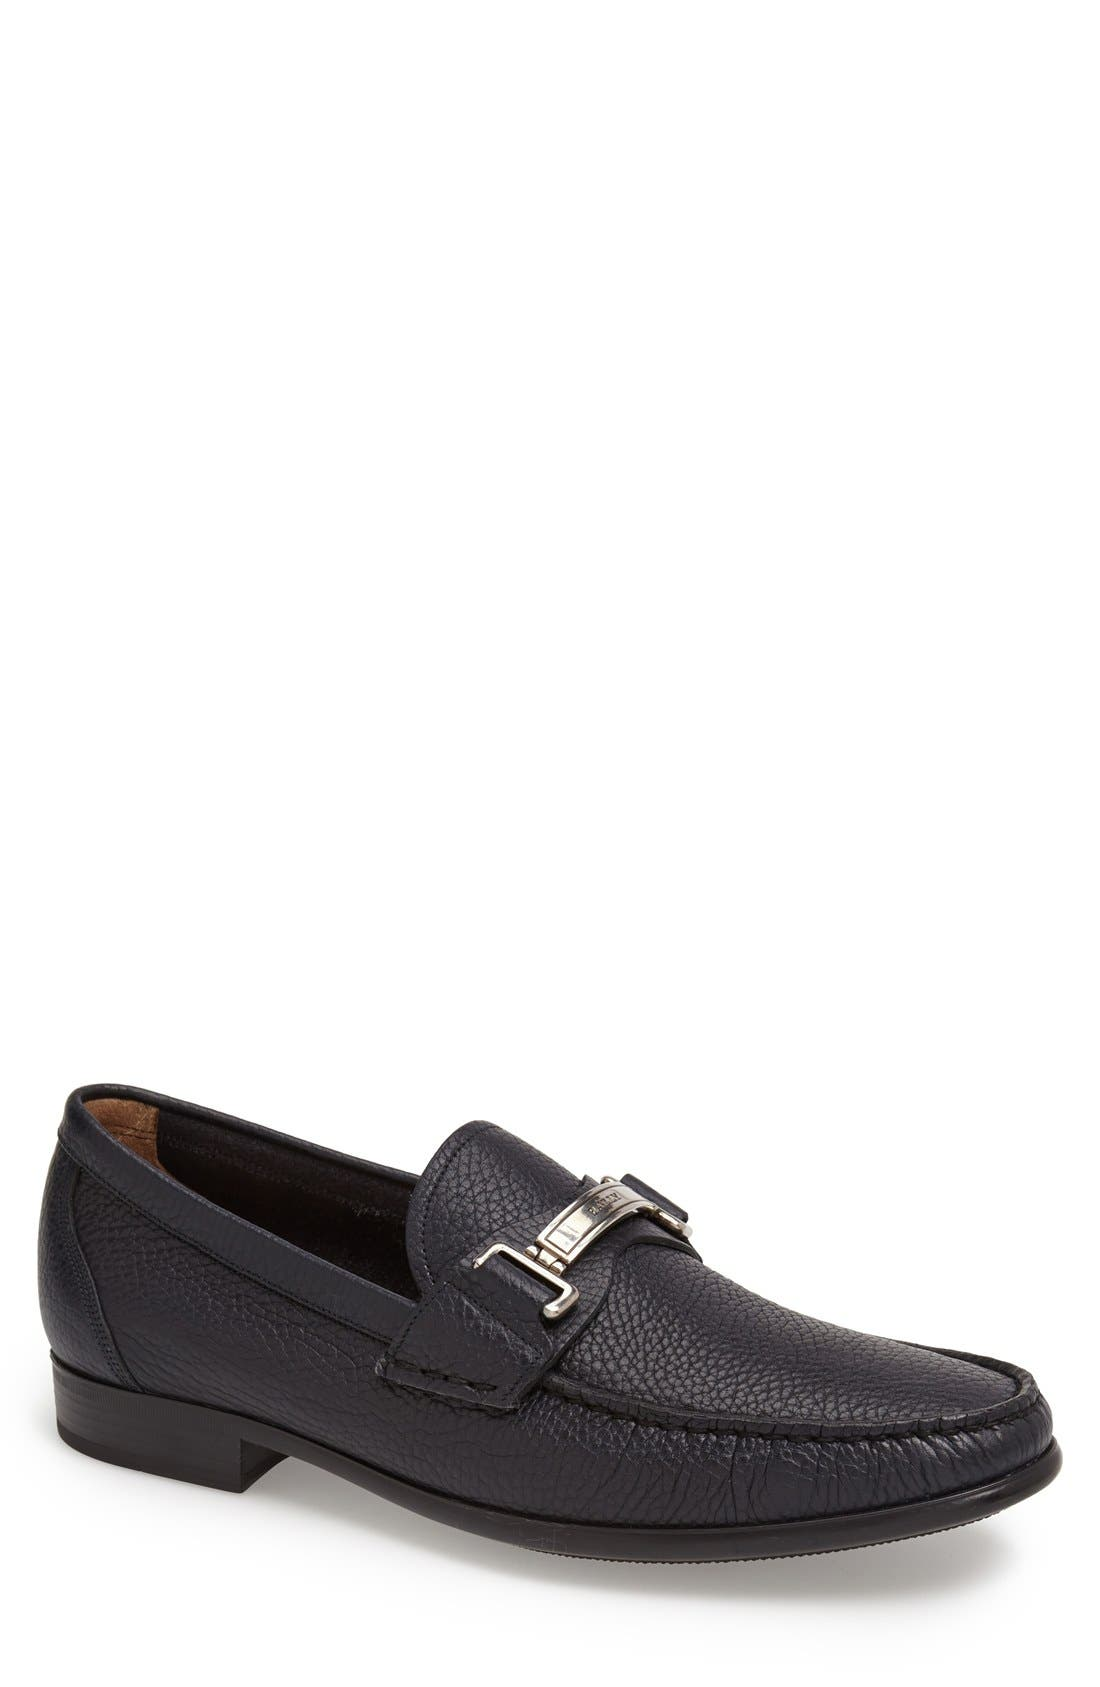 Alternate Image 1 Selected - Bally 'Corton' Bit Loafer (Men)